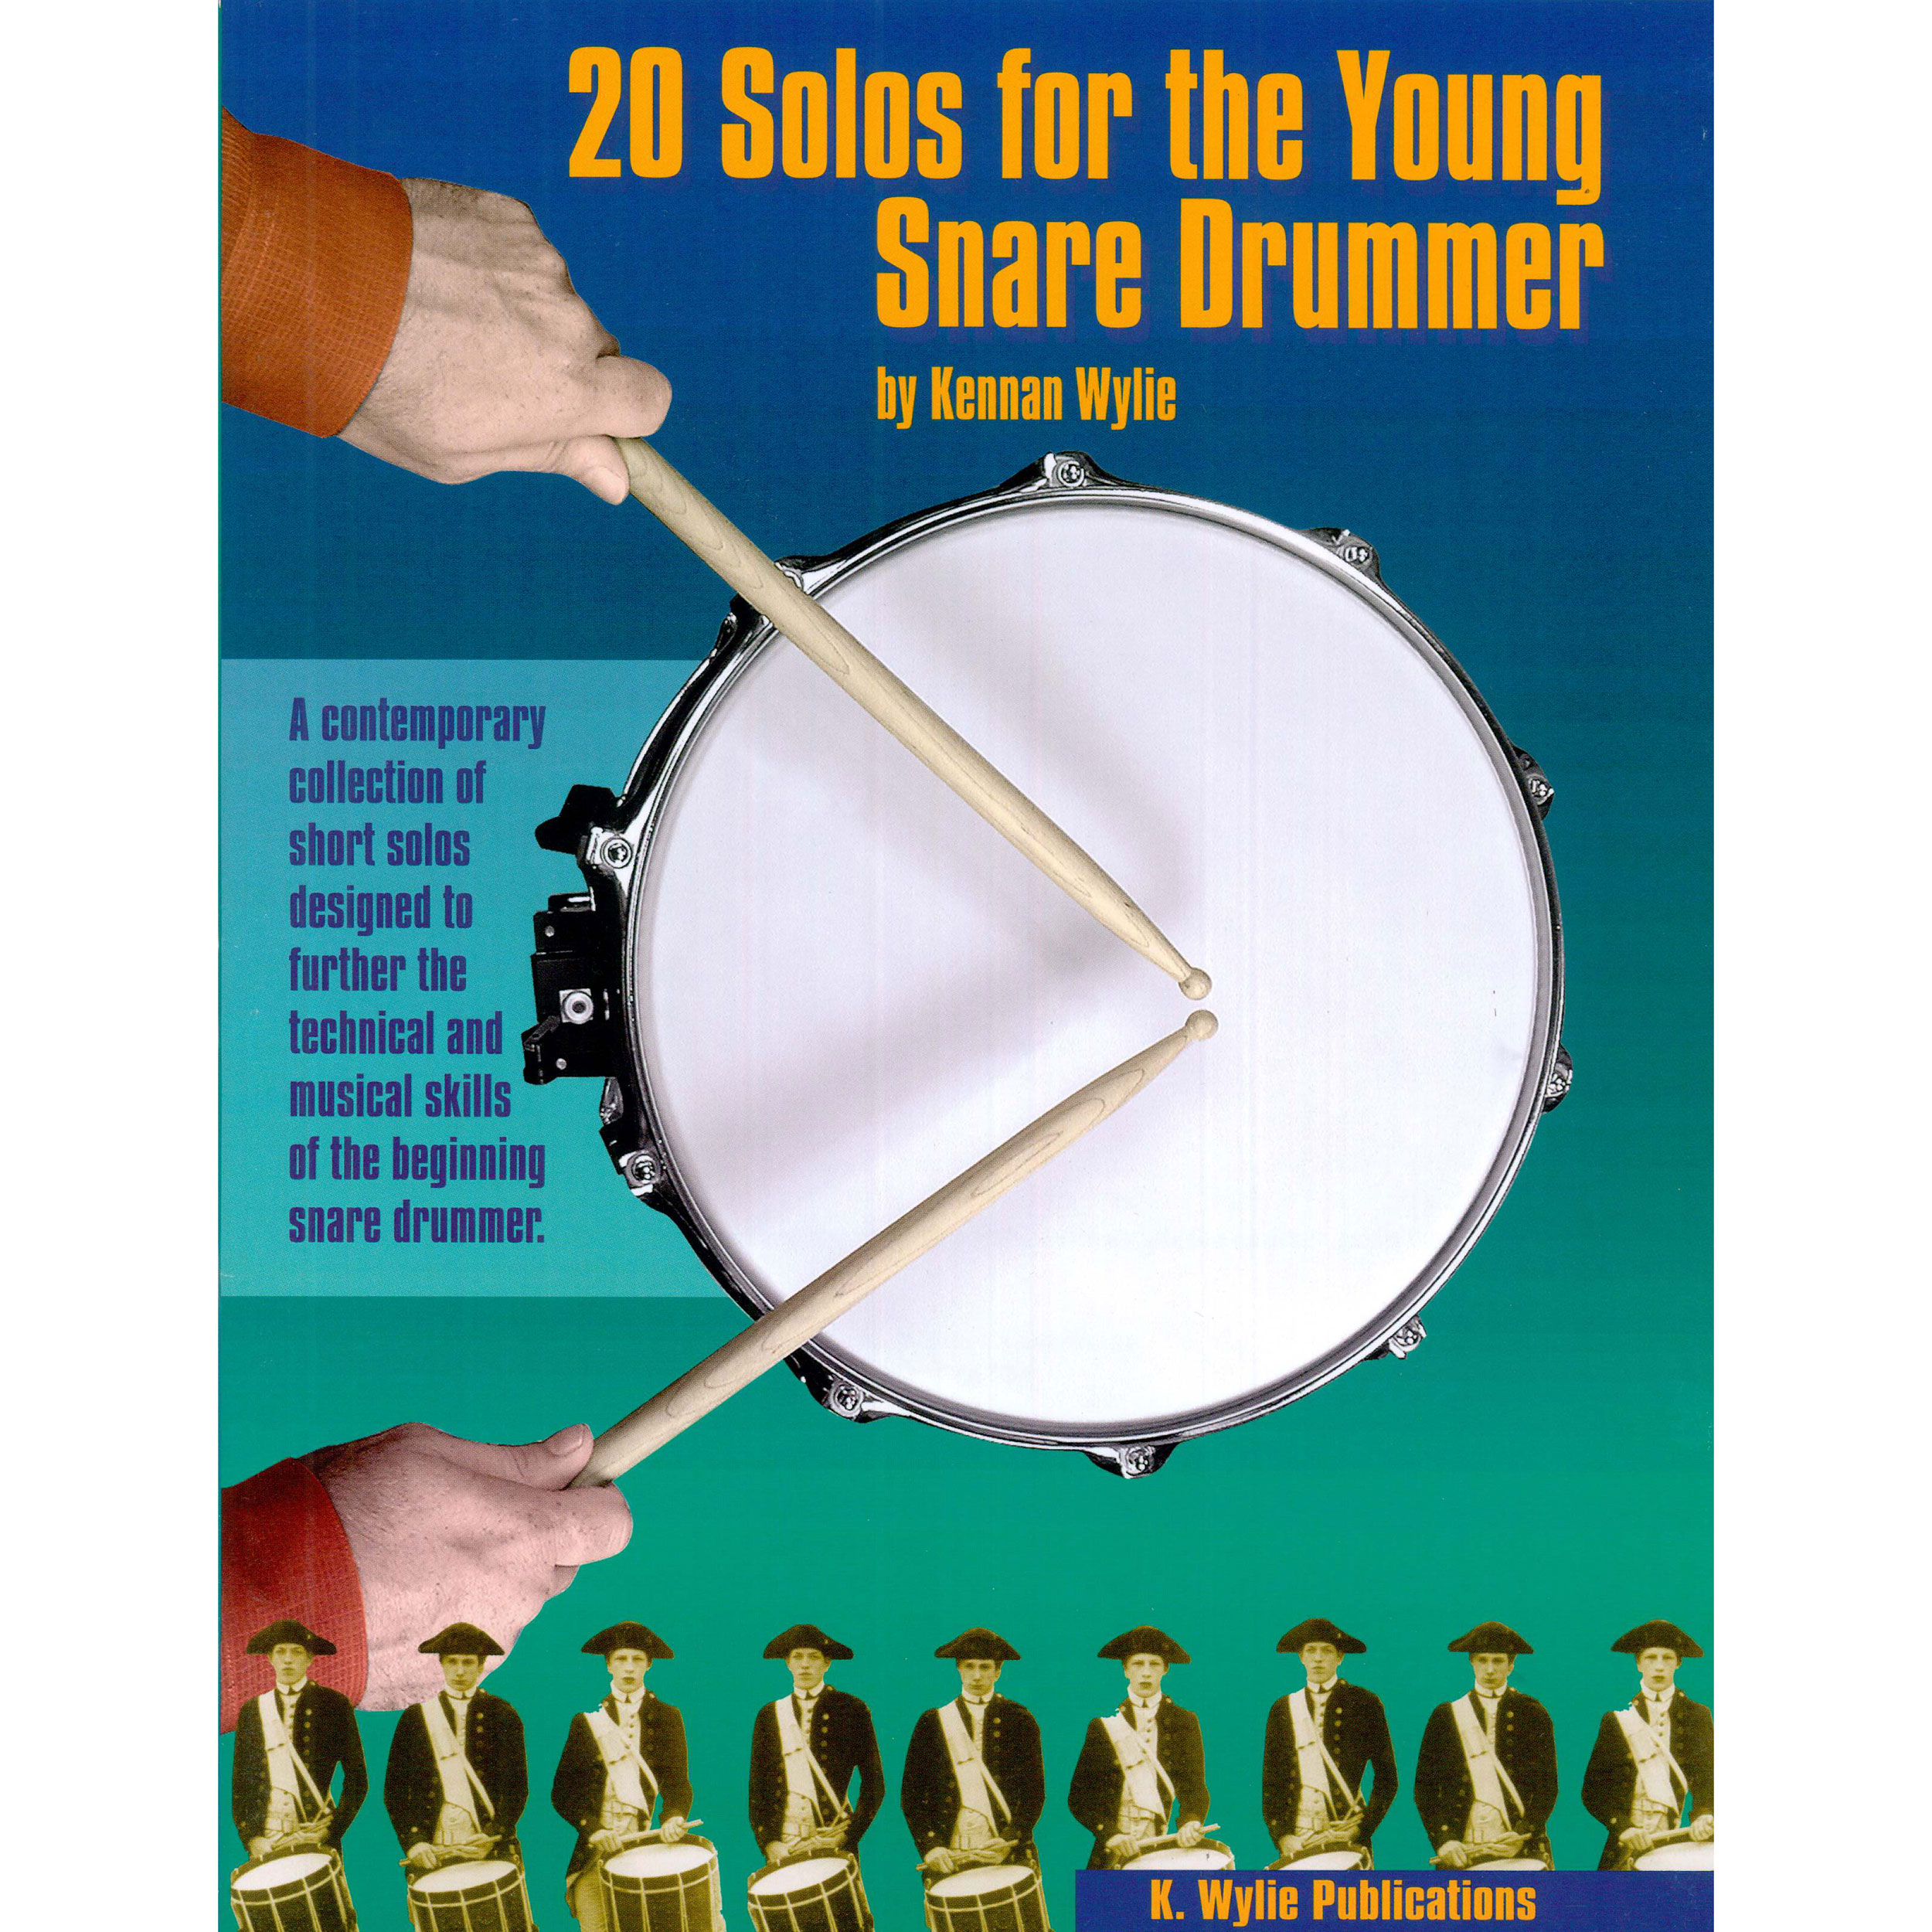 20 Solos for the Young Snare Drummer by Kennan Wylie